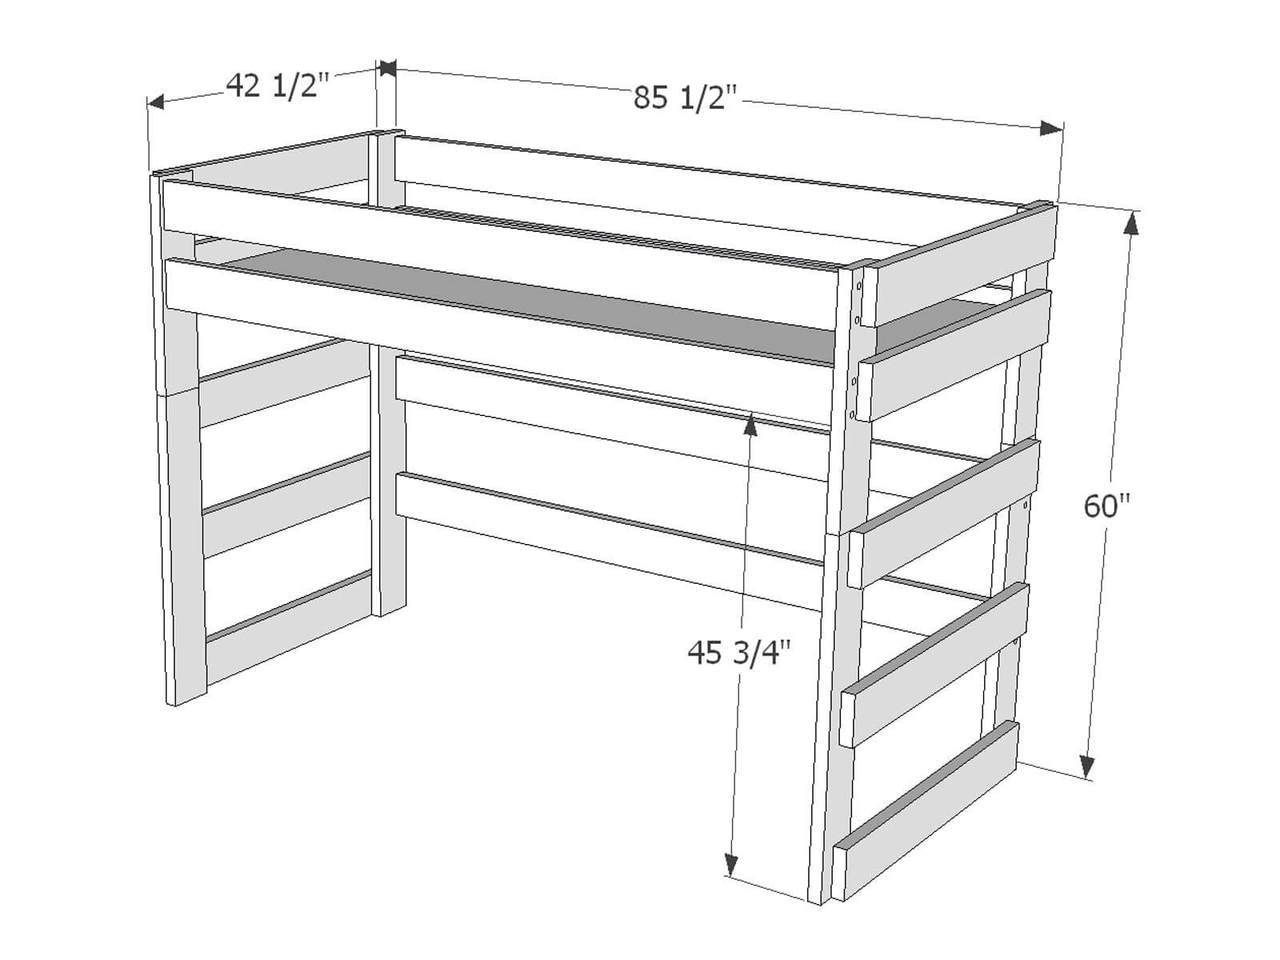 Dimensions Of Loft Bed L212 Loft Bed Loft Bed Plans Twin Loft Bed